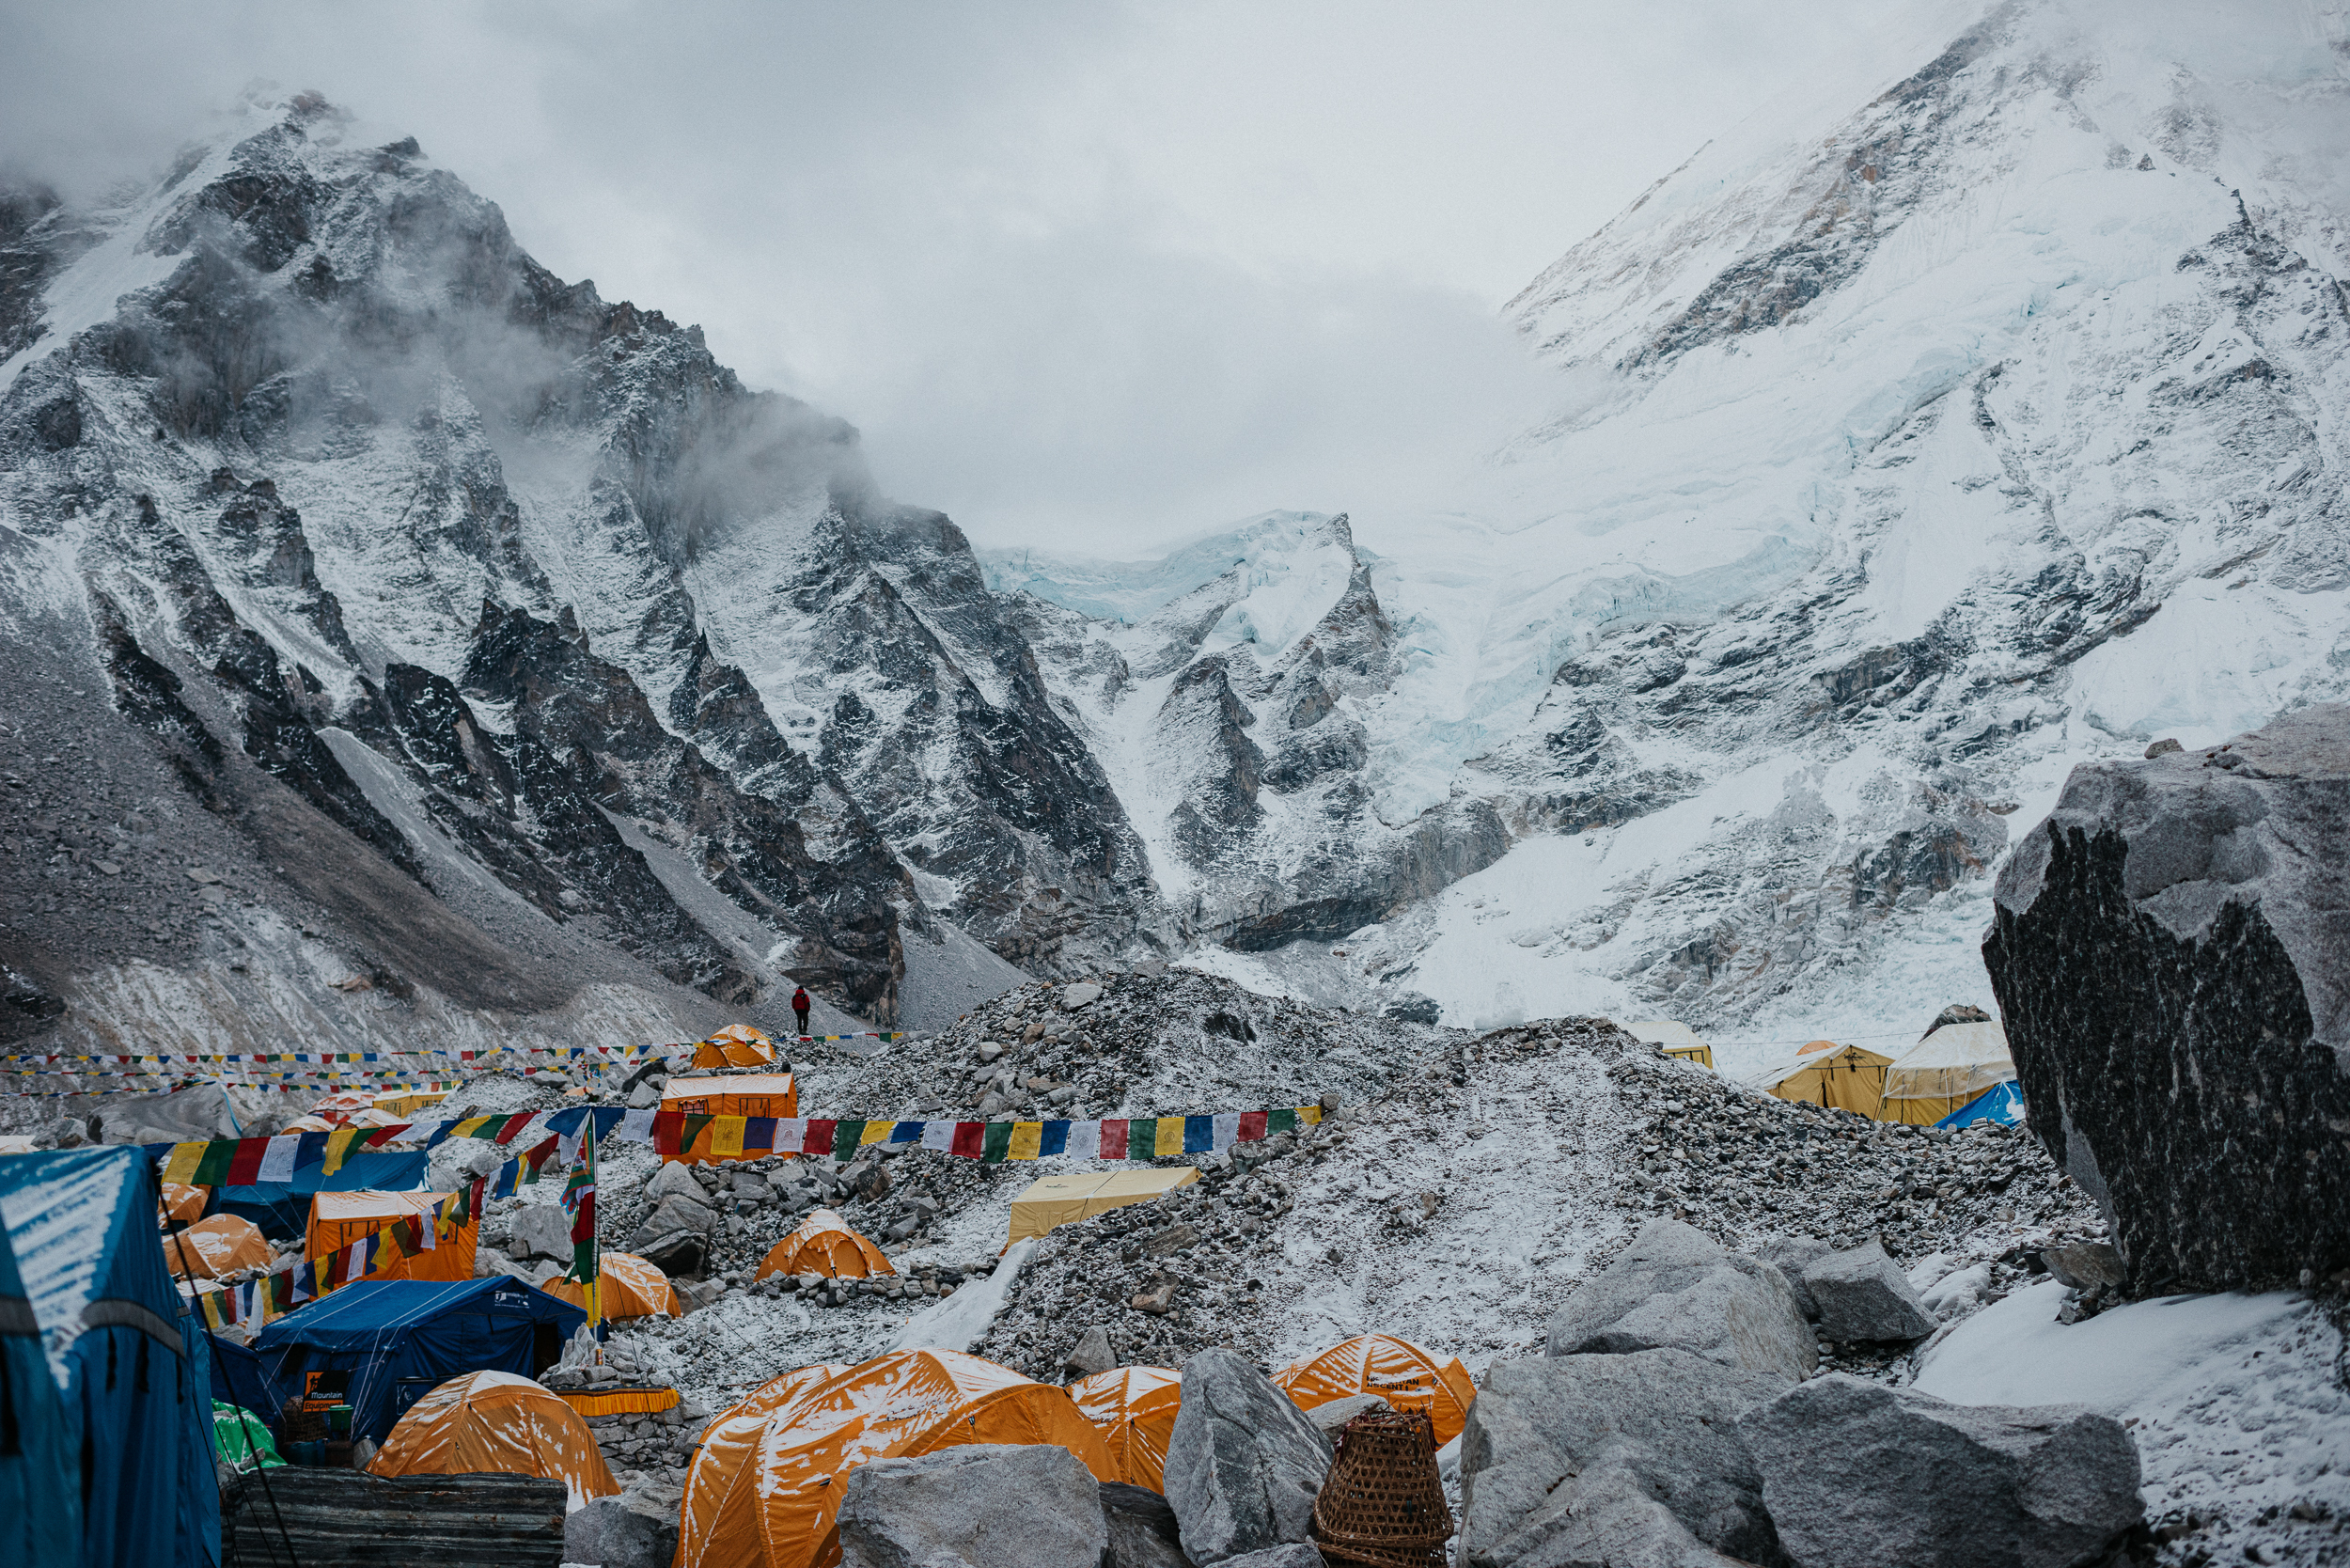 Nepal_EverestBaseCamp_2019_TaraShupe_Photography_DSC_4332.jpg